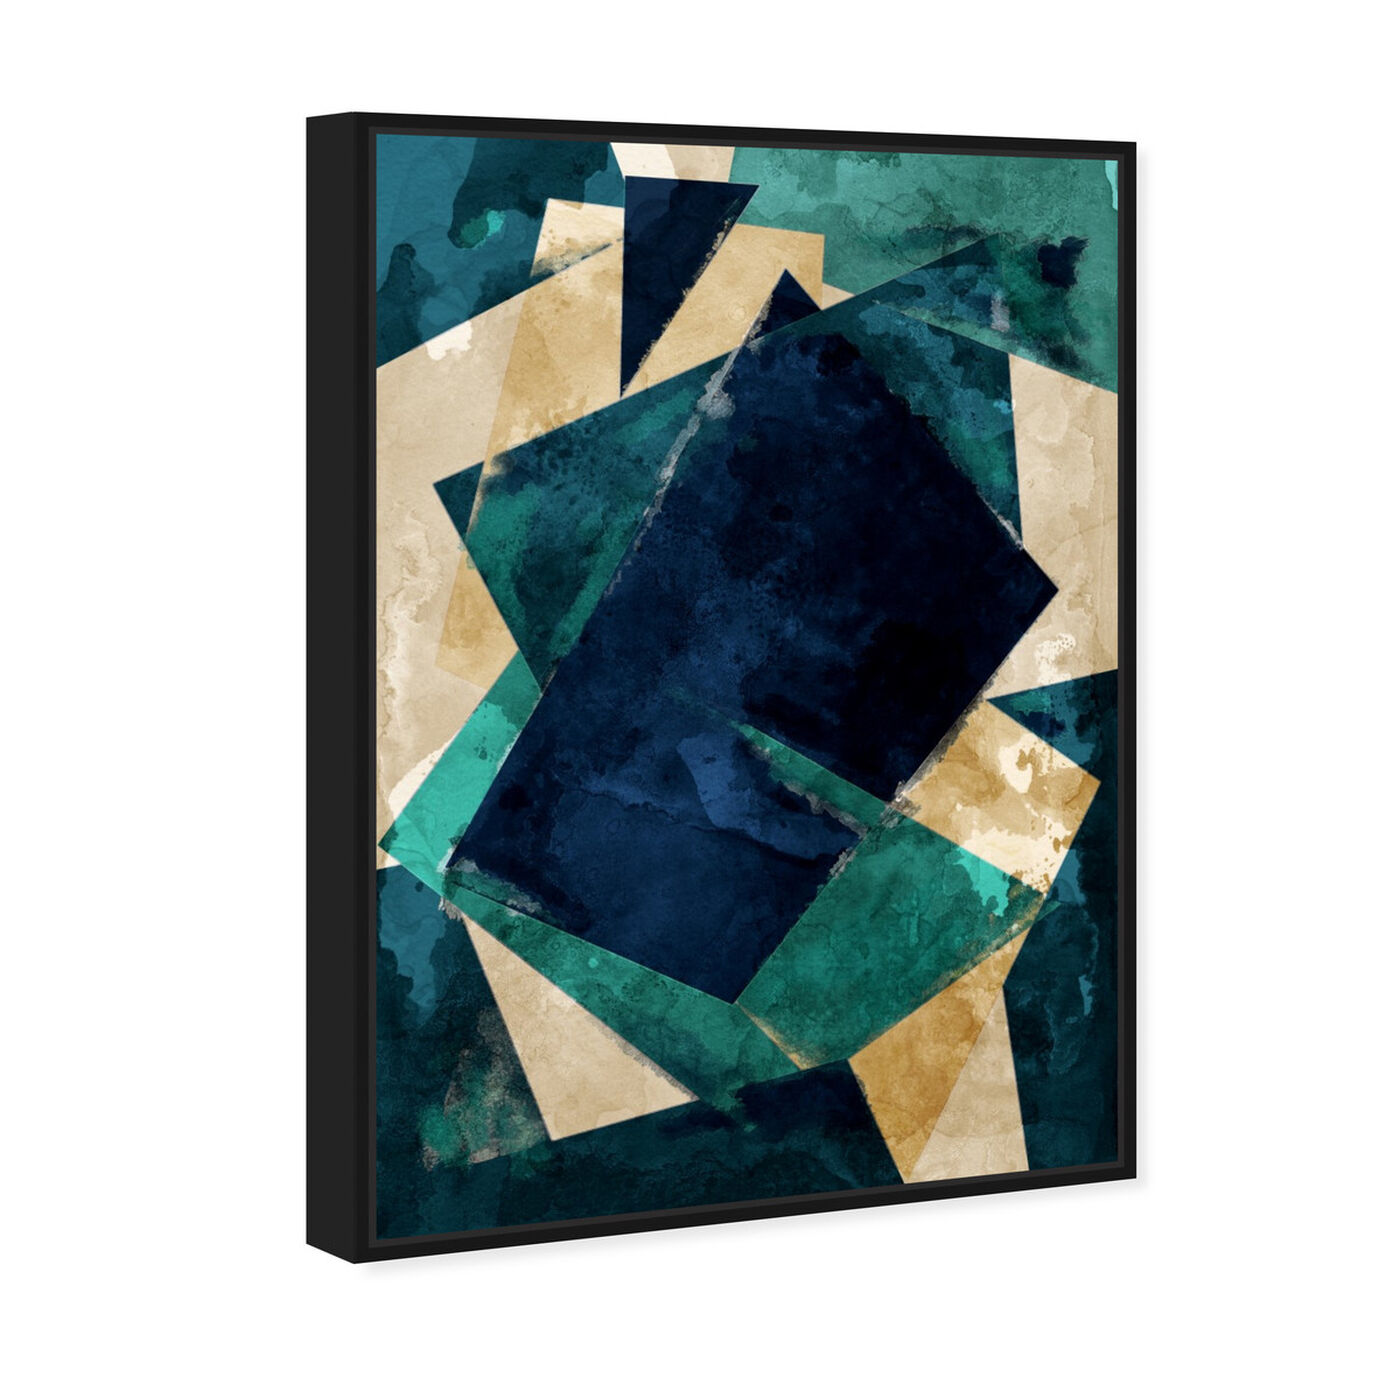 Angled view of Abstracta Dos featuring abstract and geometric art.